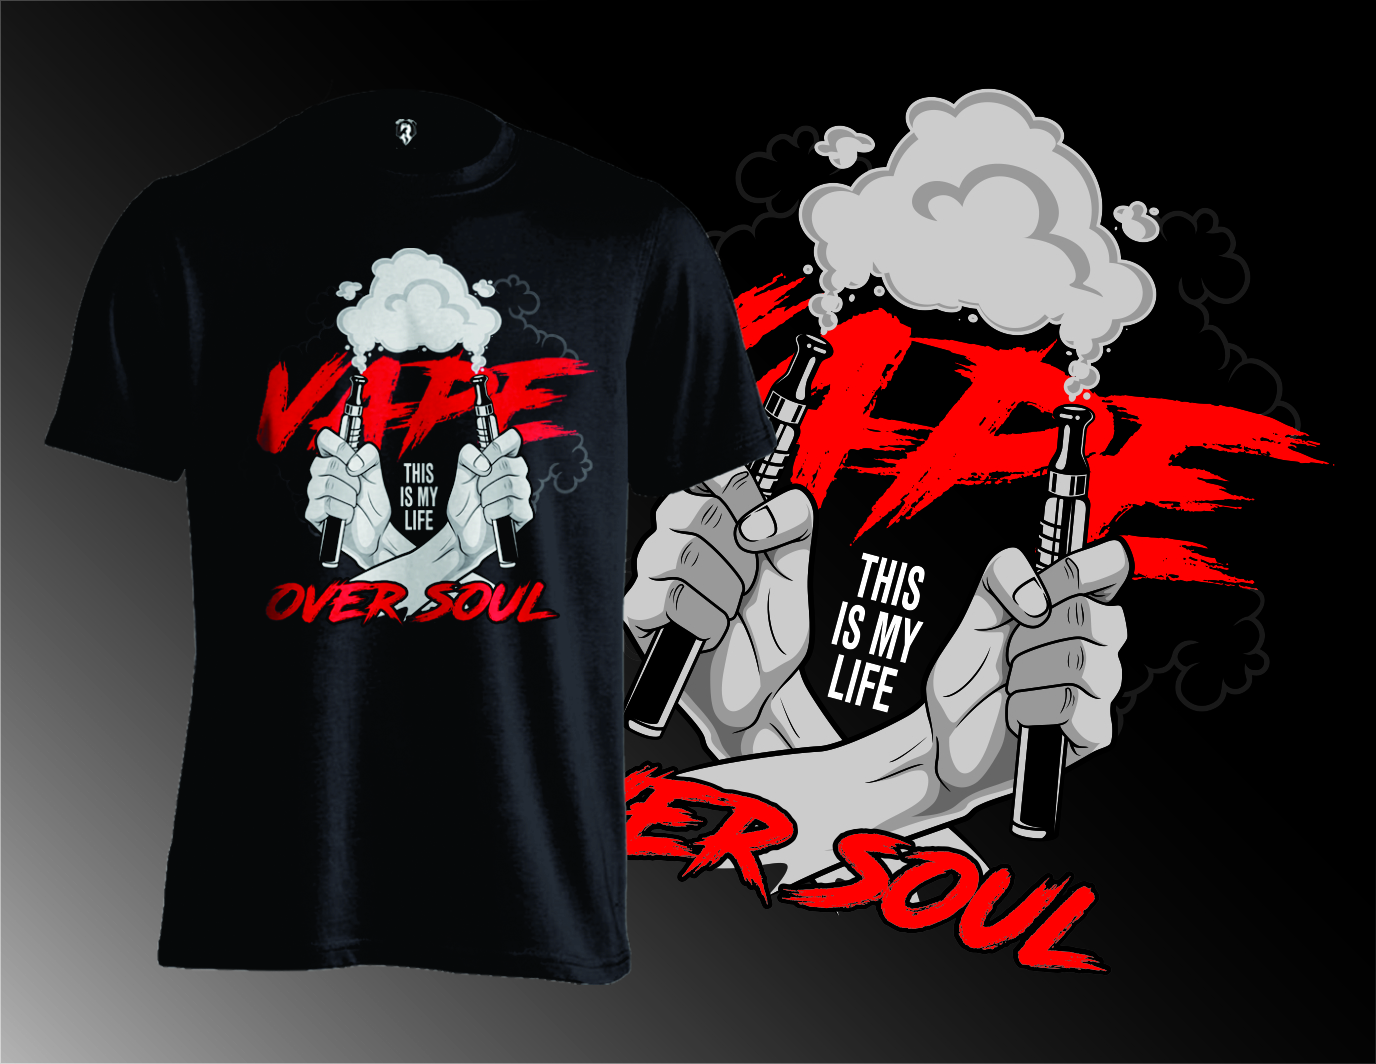 Personable Upmarket Cigarette T Shirt Design For Steamium Vape